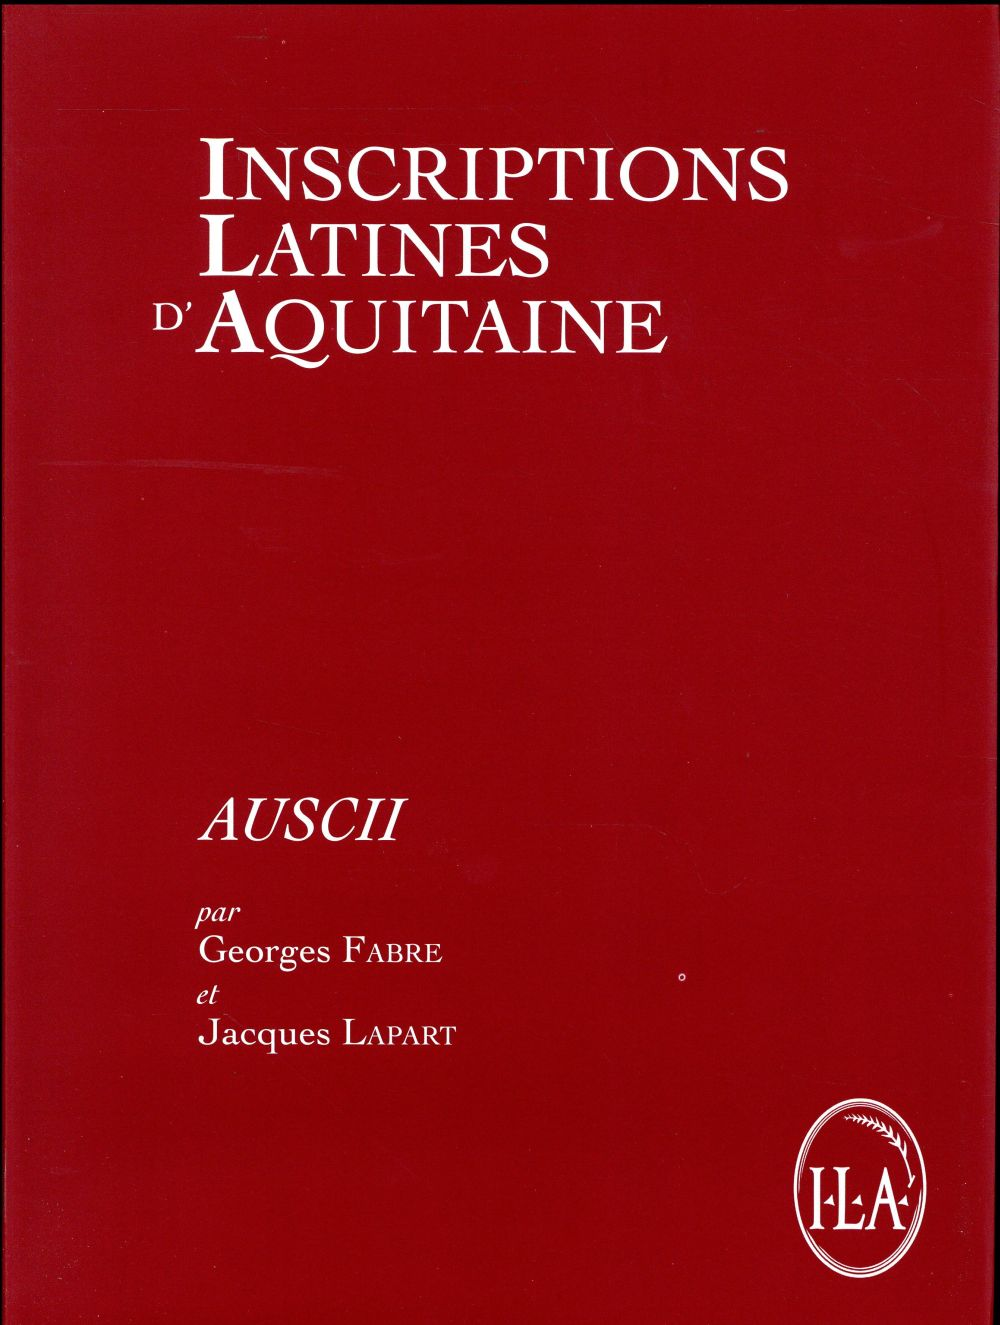 INSCRIPTIONS LATINES D'AQUITAINE, AUSCII